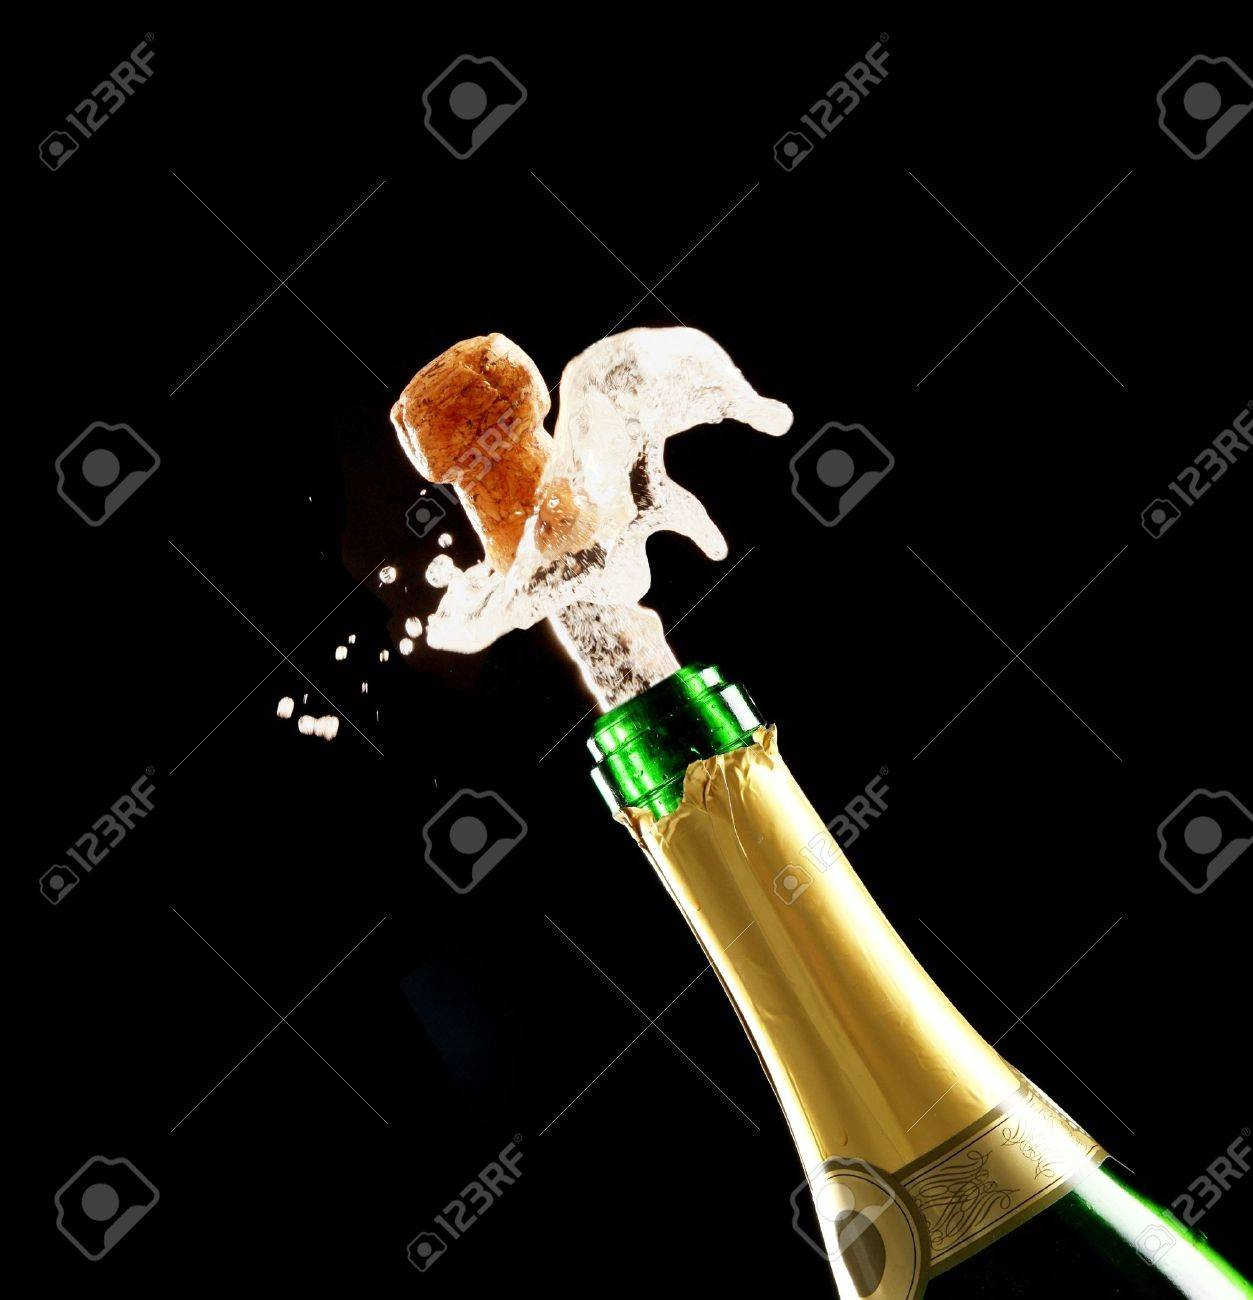 Bottle of champagne just opened with cork being expelled Stock Photo - 8509596